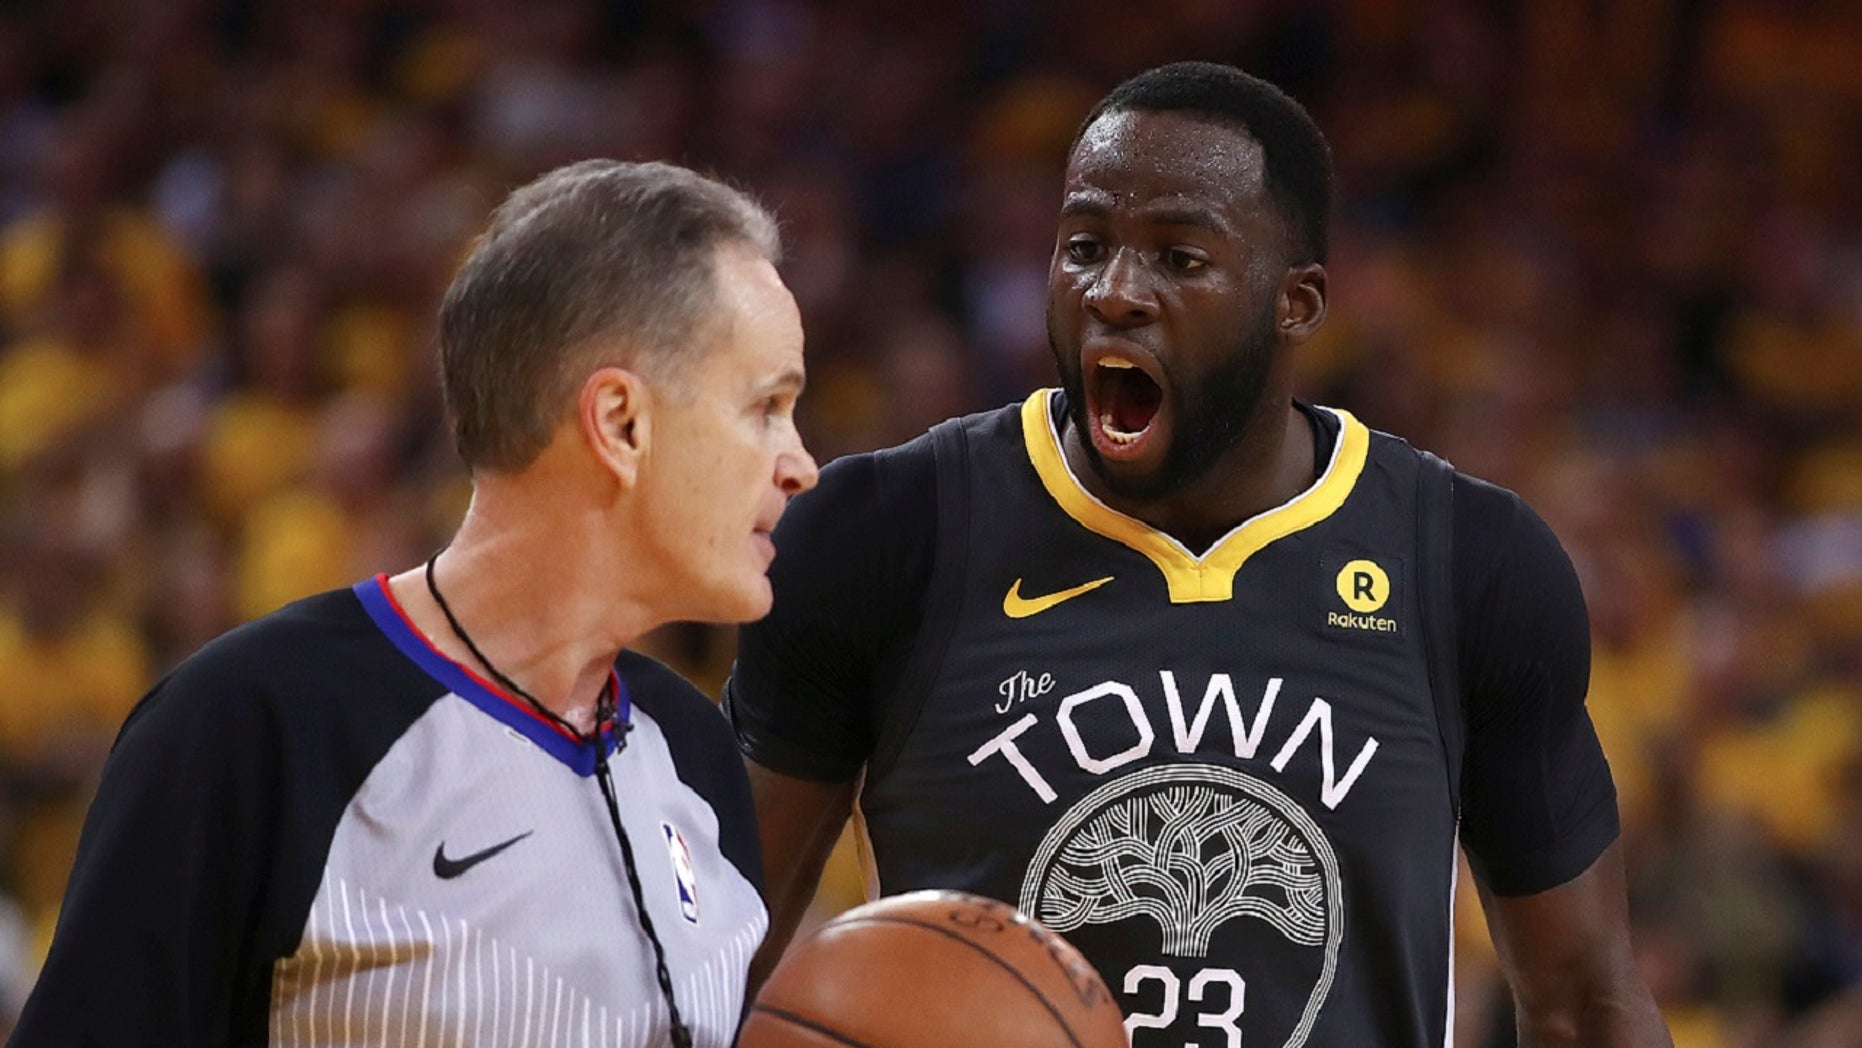 Draymond Green challenges Charles Barkley to punch him in the face